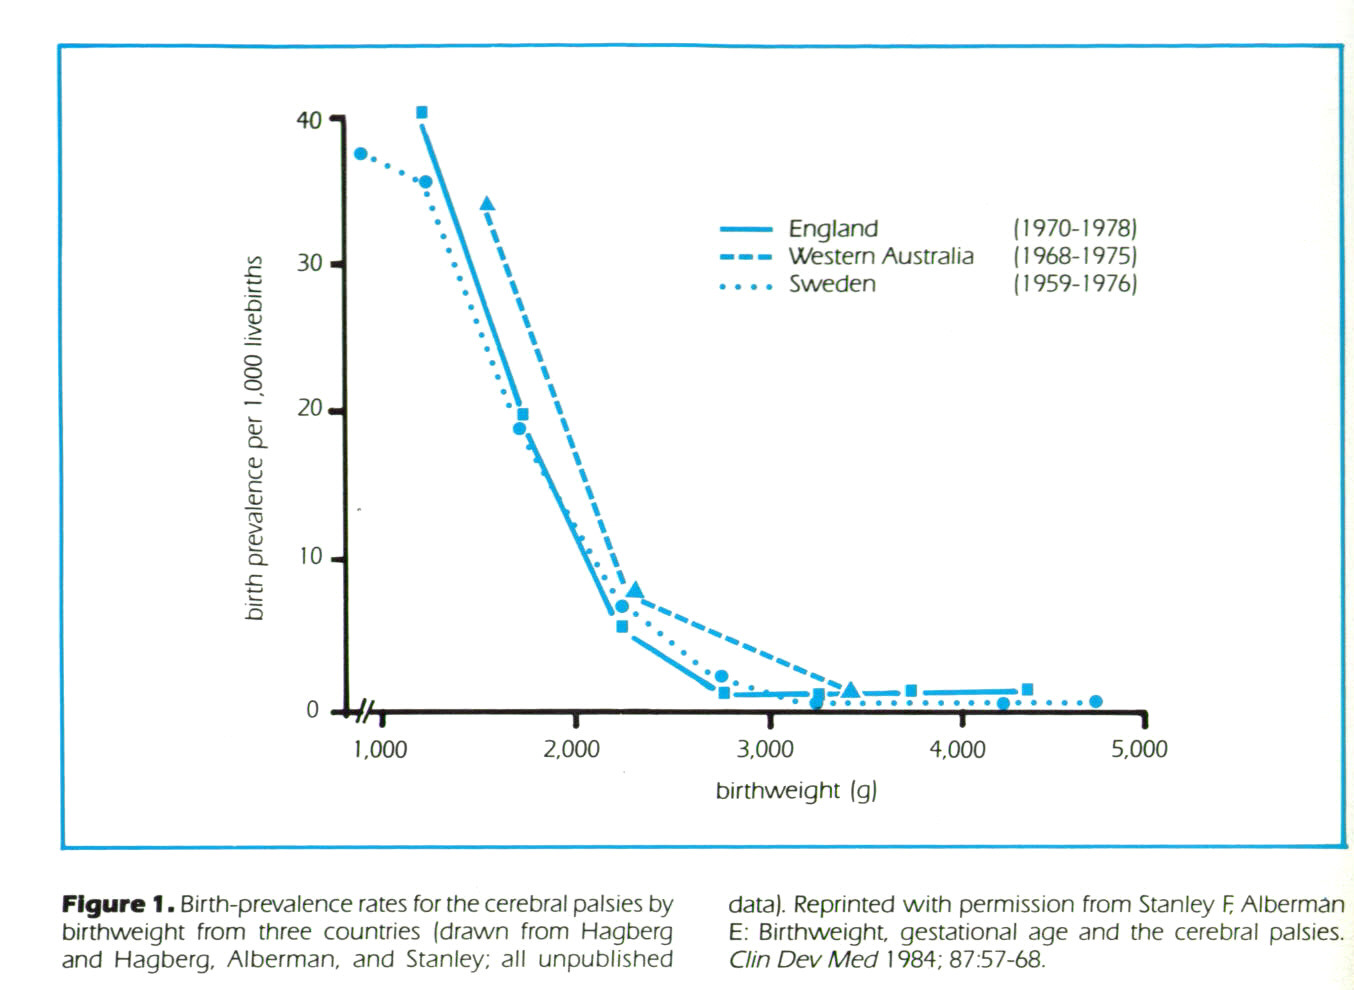 Figure 1. Birth-prevalence rates for the cerebral palsies by birthweight from three countries (drawn from Hagberg and Hagberg. Alberman, and Stanley; all unpublished data). Reprinted with permission from Stanley F, Alberman E: Birthweight, gestational age and the cerebral palsies. Clin Dev Med 1984; 87:57-68.